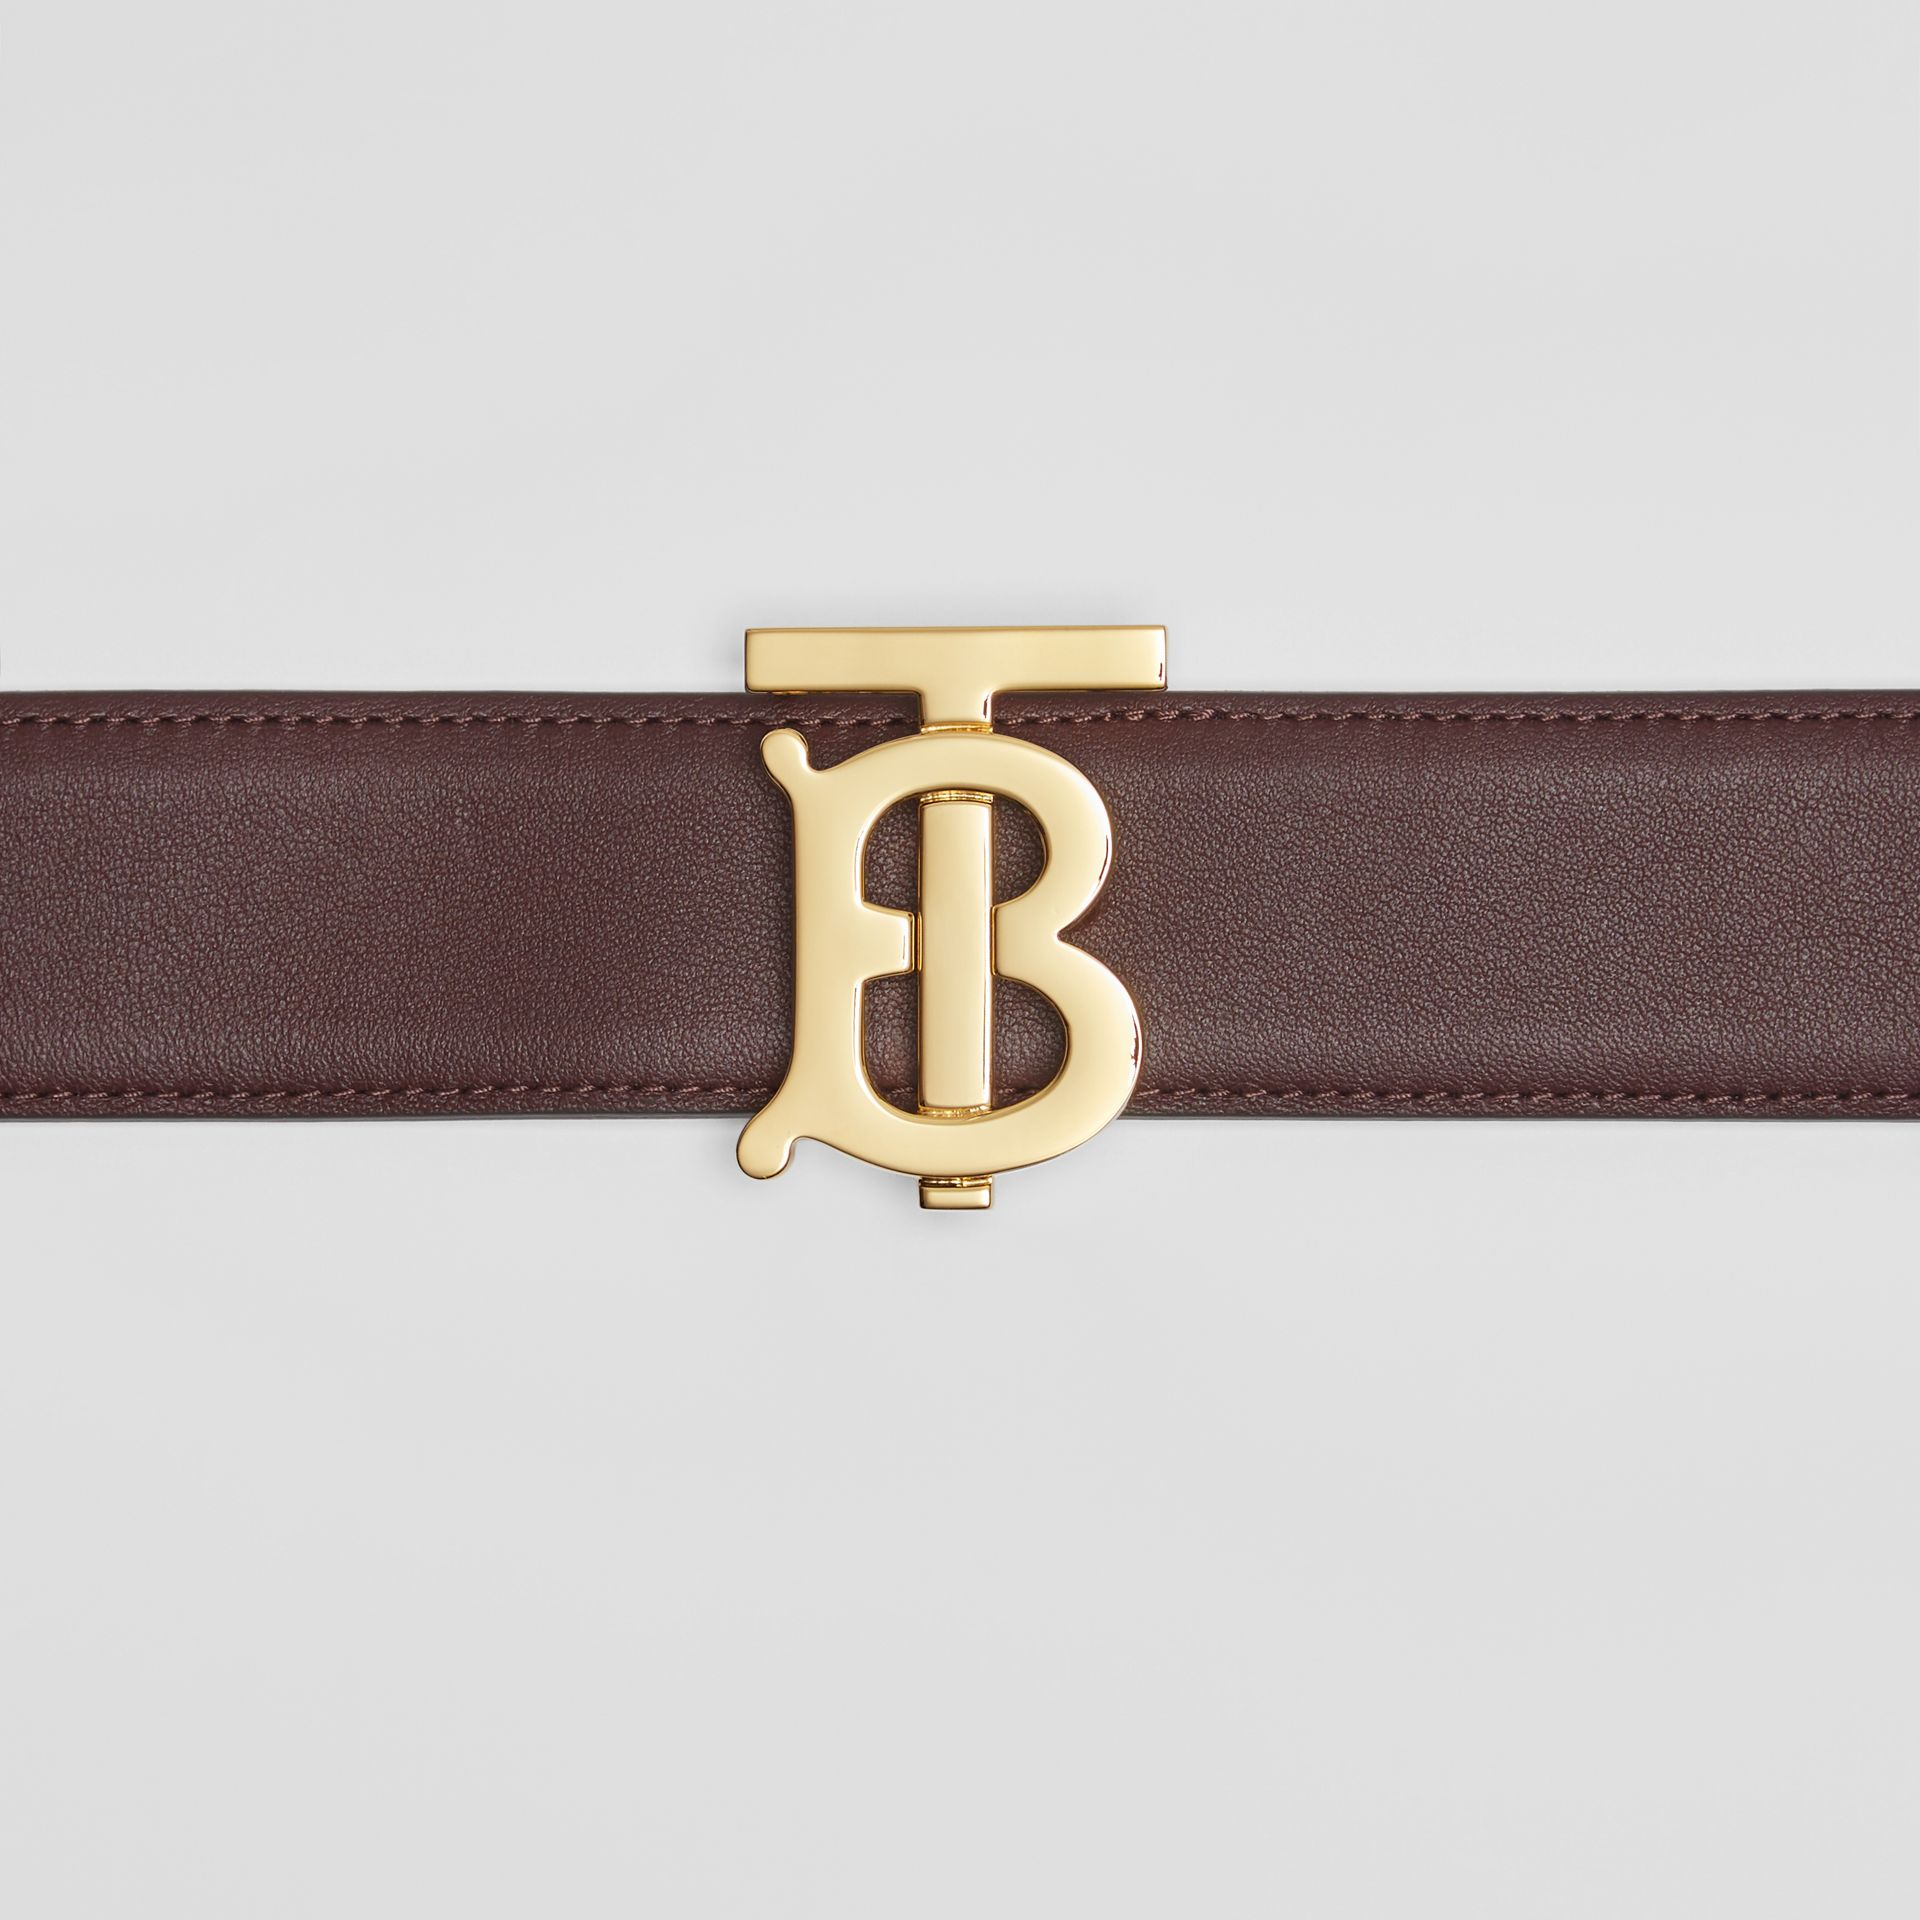 Reversible Monogram Motif Leather Belt in Oxblood/rose Beige - Women | Burberry - gallery image 1